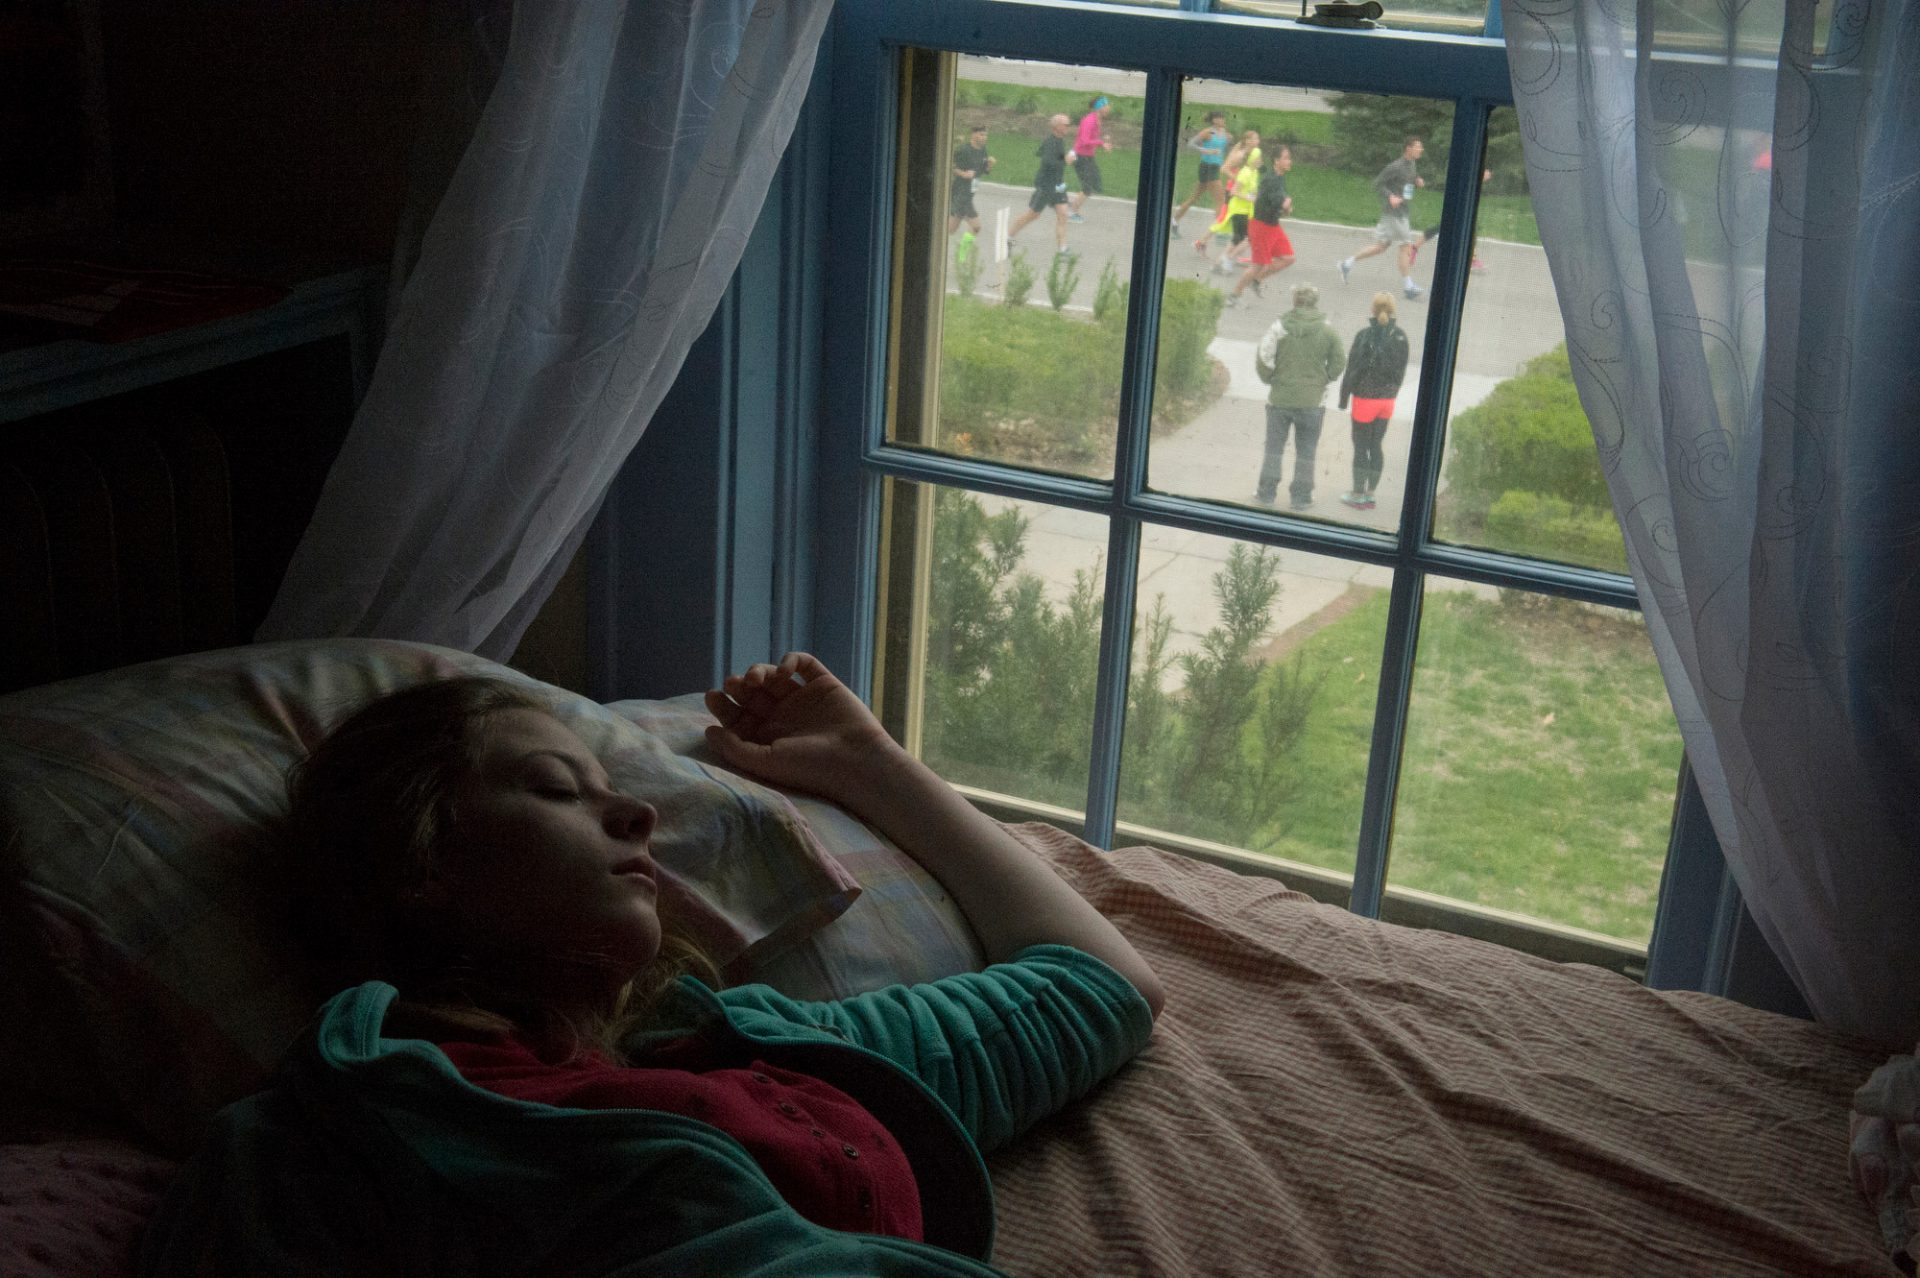 Photo: A teenage girl sleeps while marathoners run by her house in Lincoln, Nebraska.